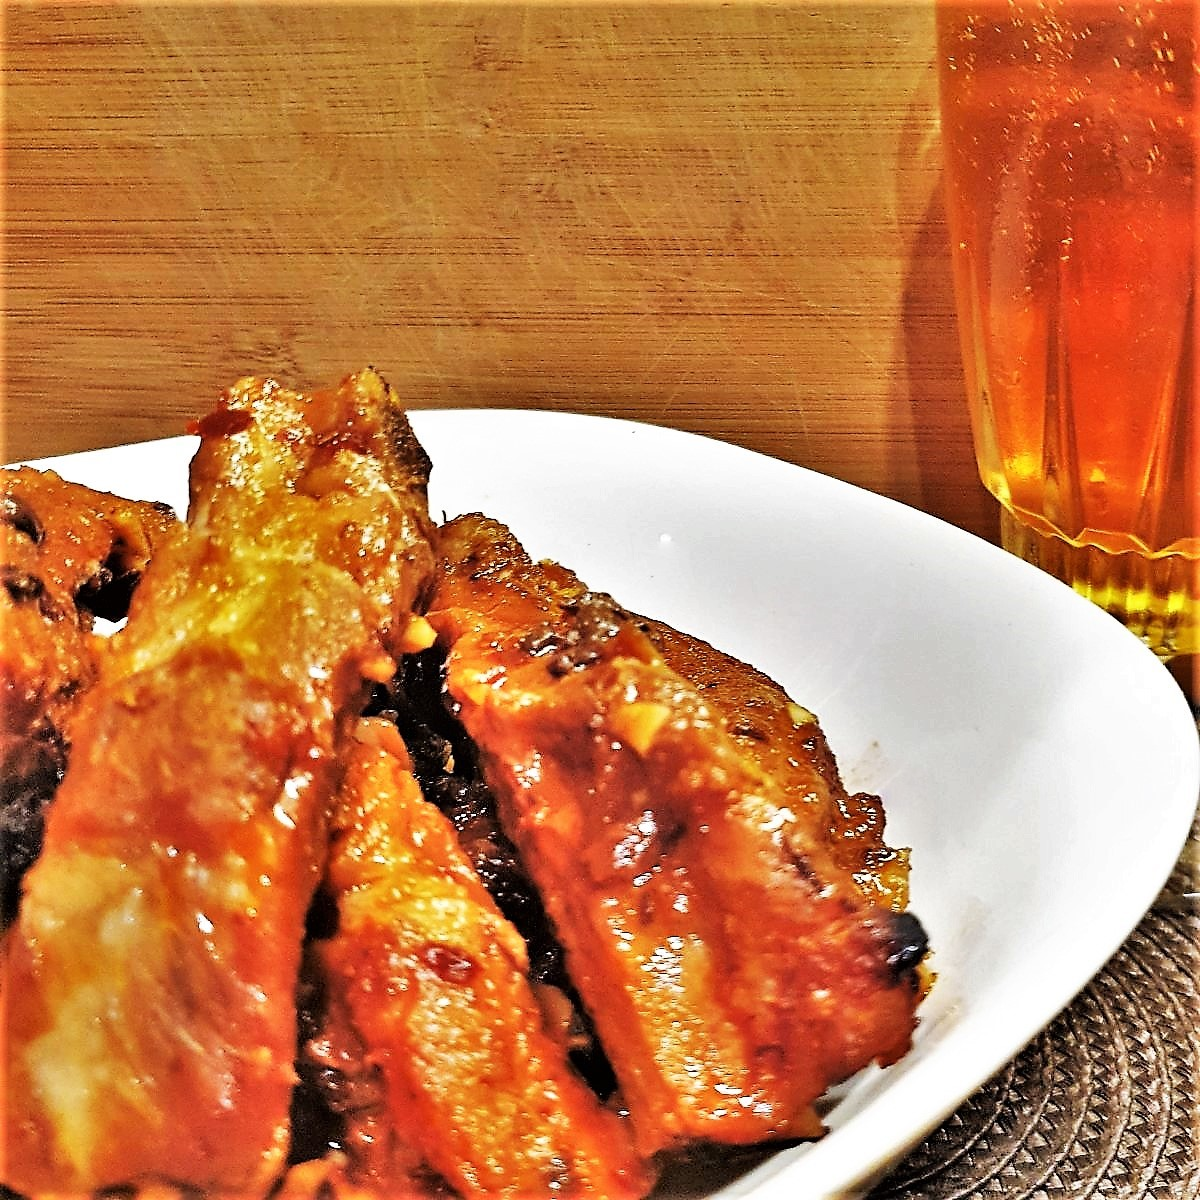 A plate of sticky pork ribs next to a glass of beer.